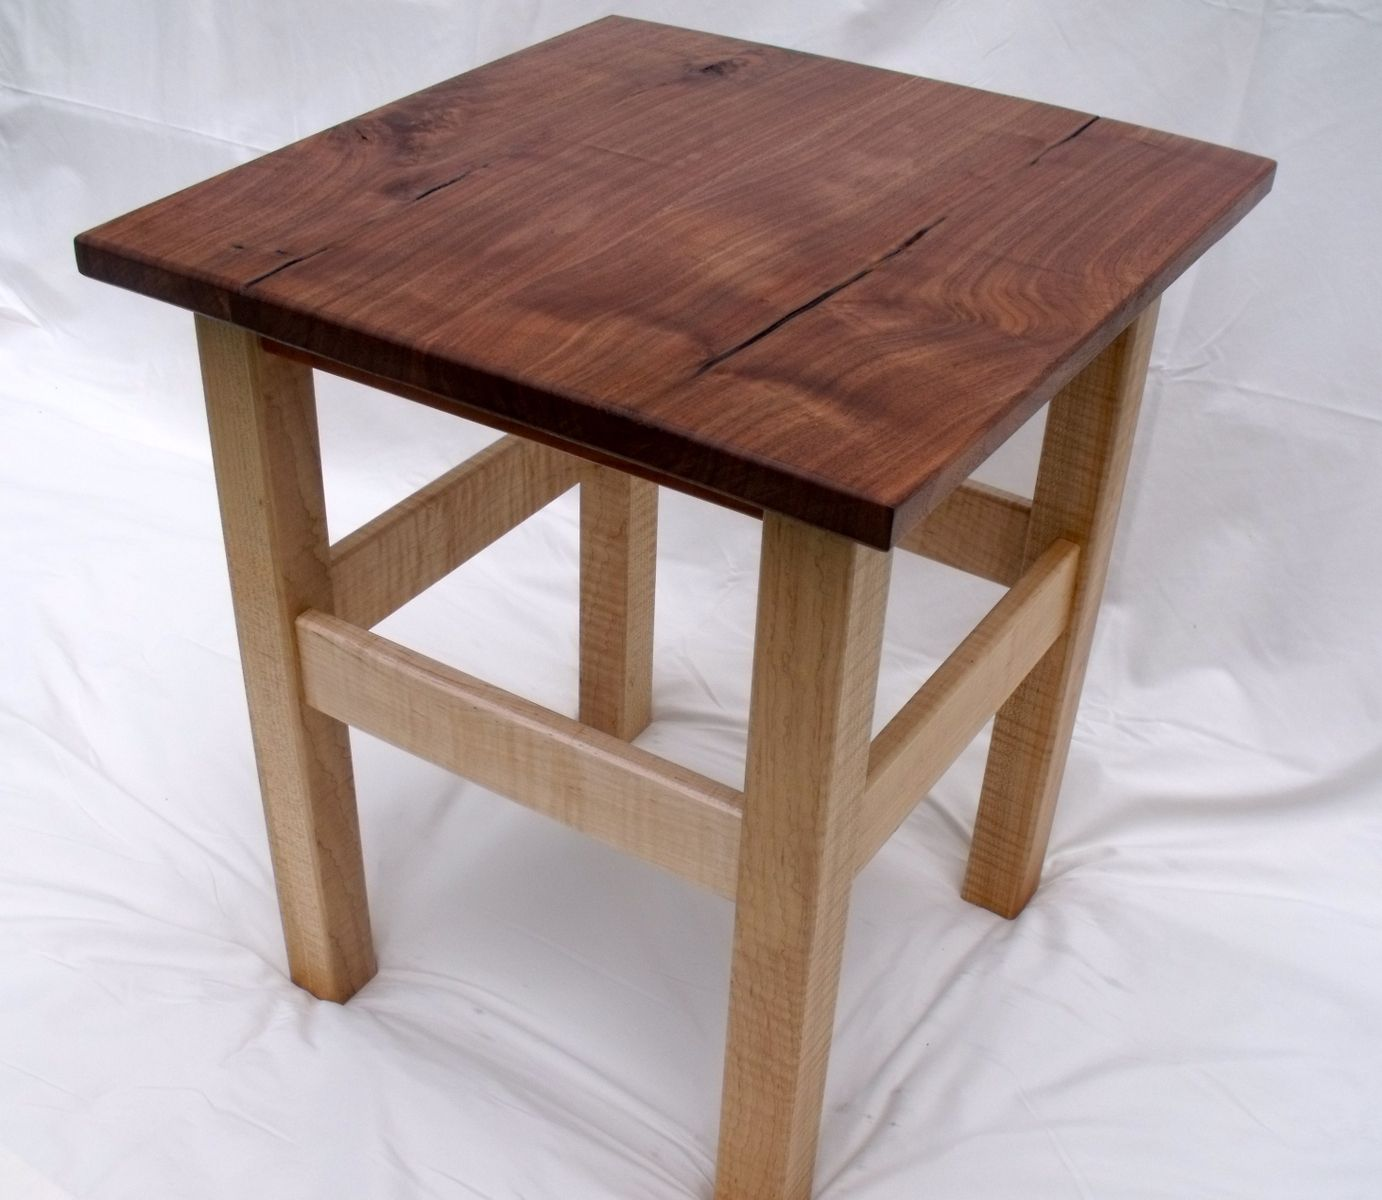 Custom Made End Table Of Walnut Wild Cherry And Flame Maple